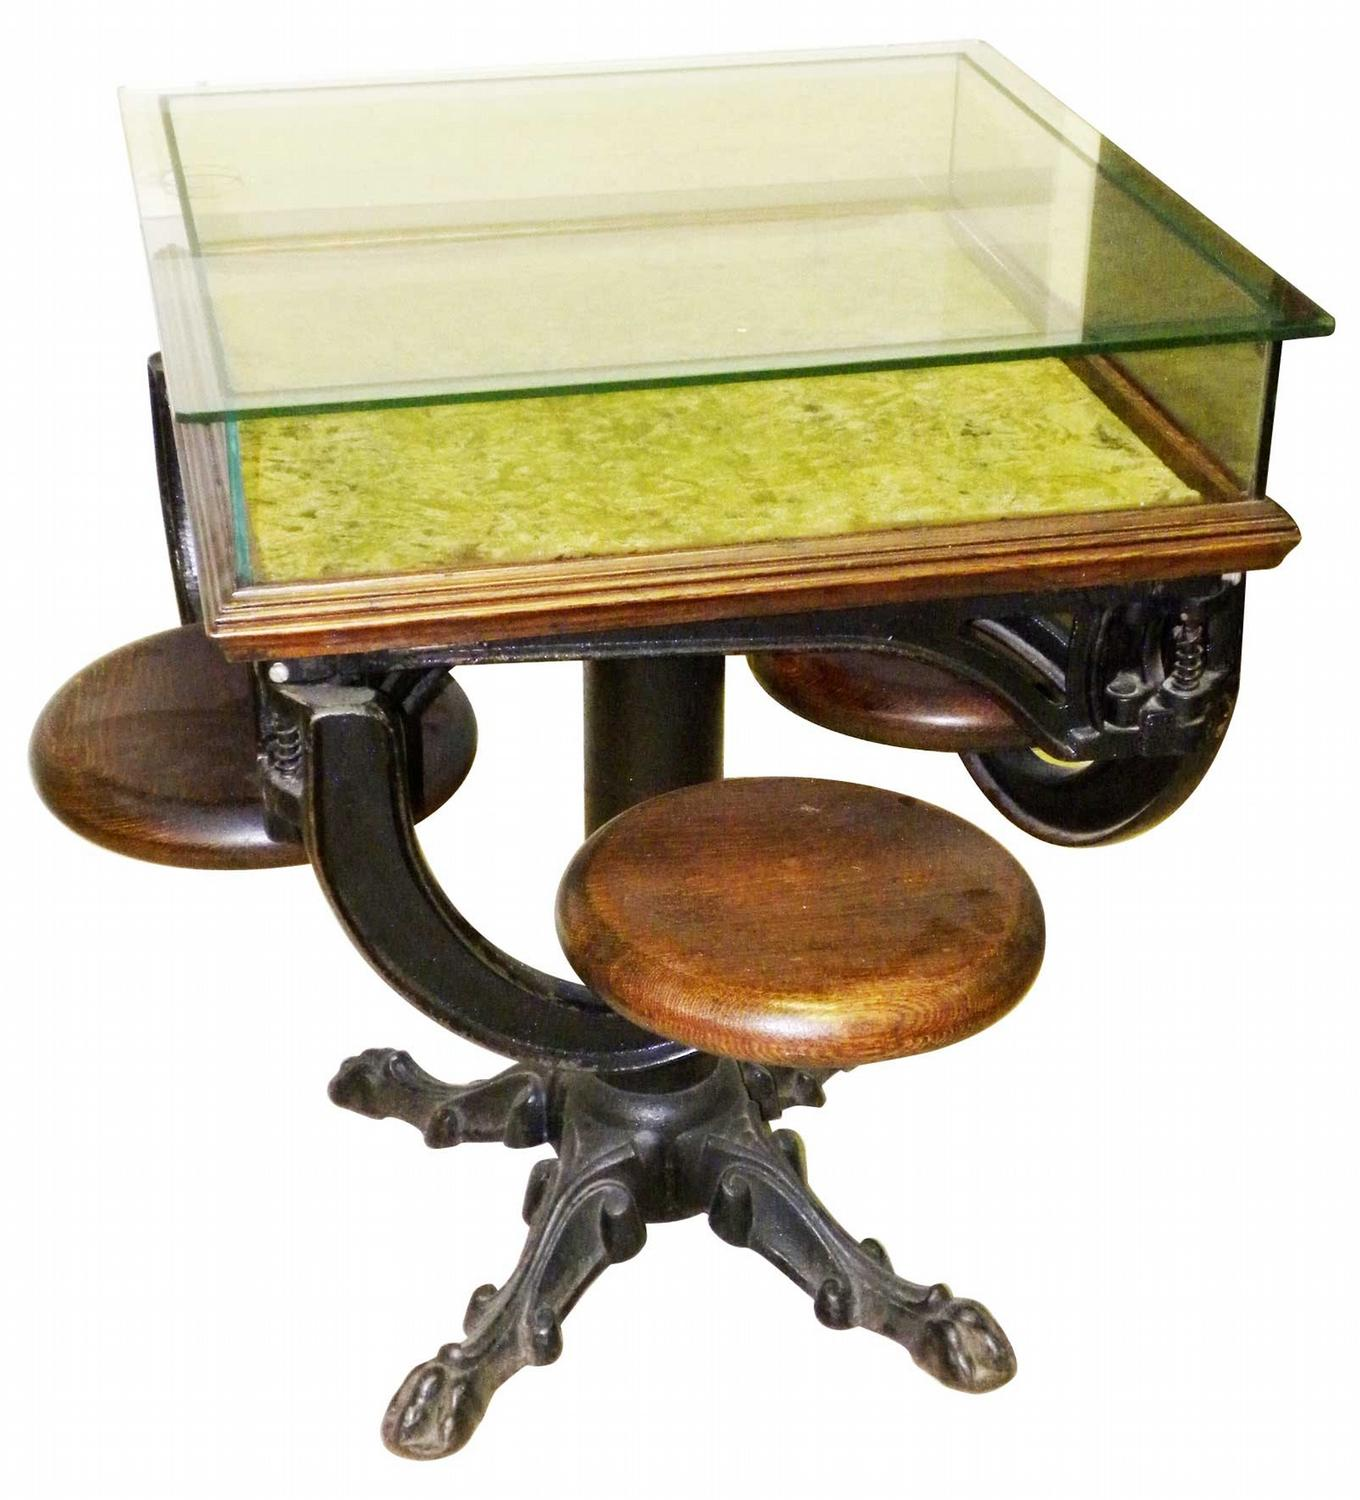 Charmant Ice Cream Display Table With Swing Out Stools. Loading Zoom